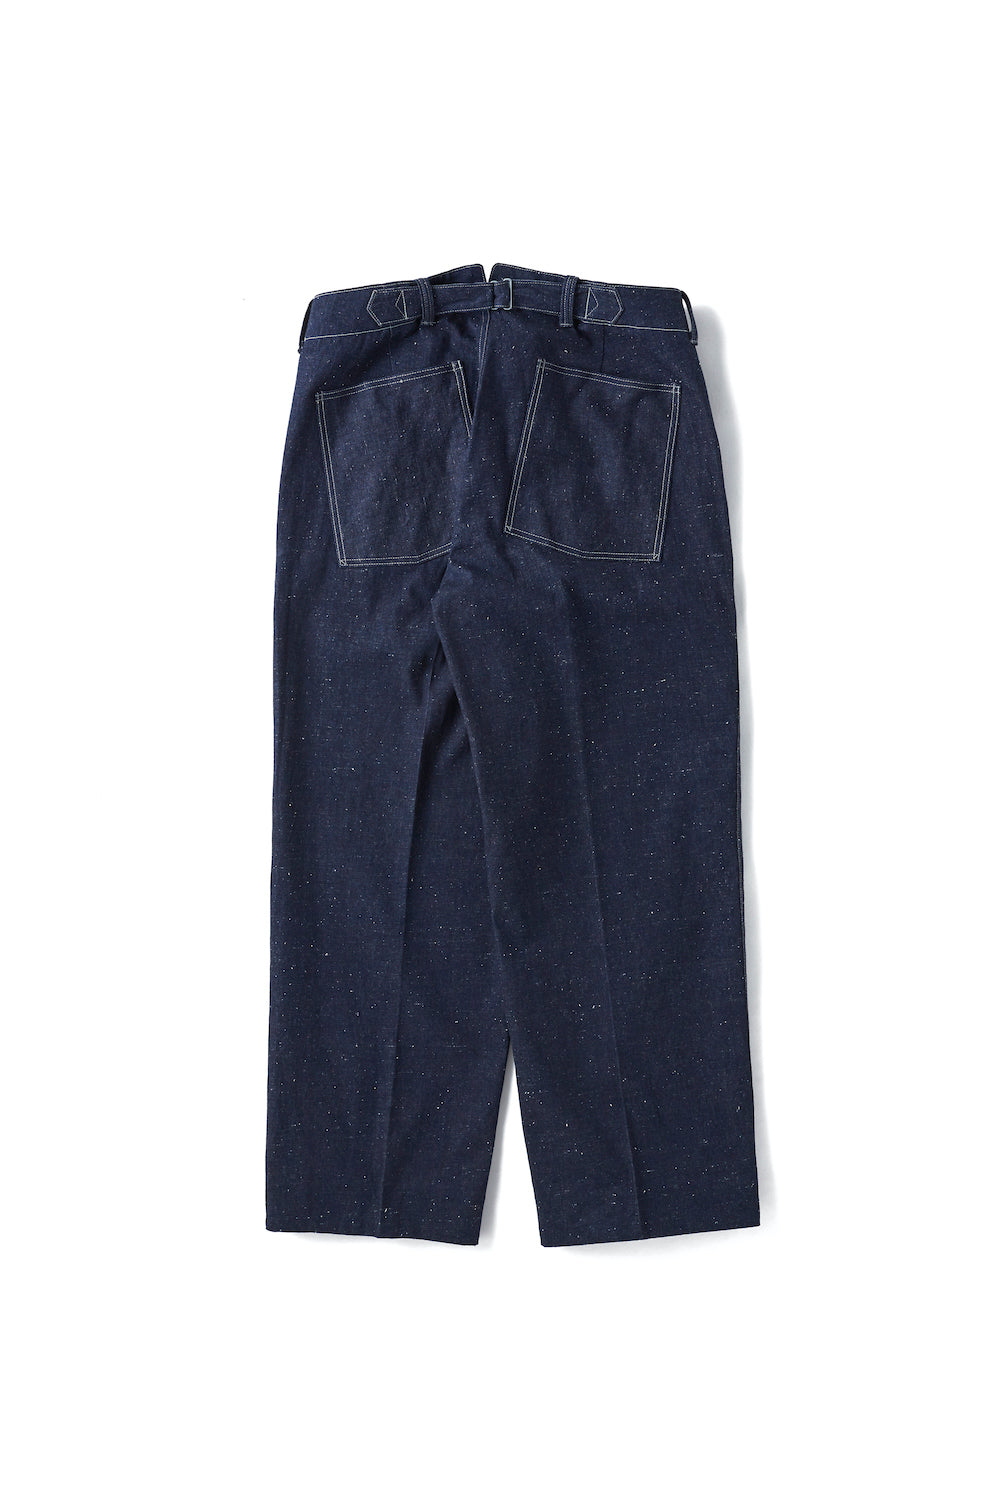 BUCKLE BACK SAILOR TROUSER - 211OJ-PT07